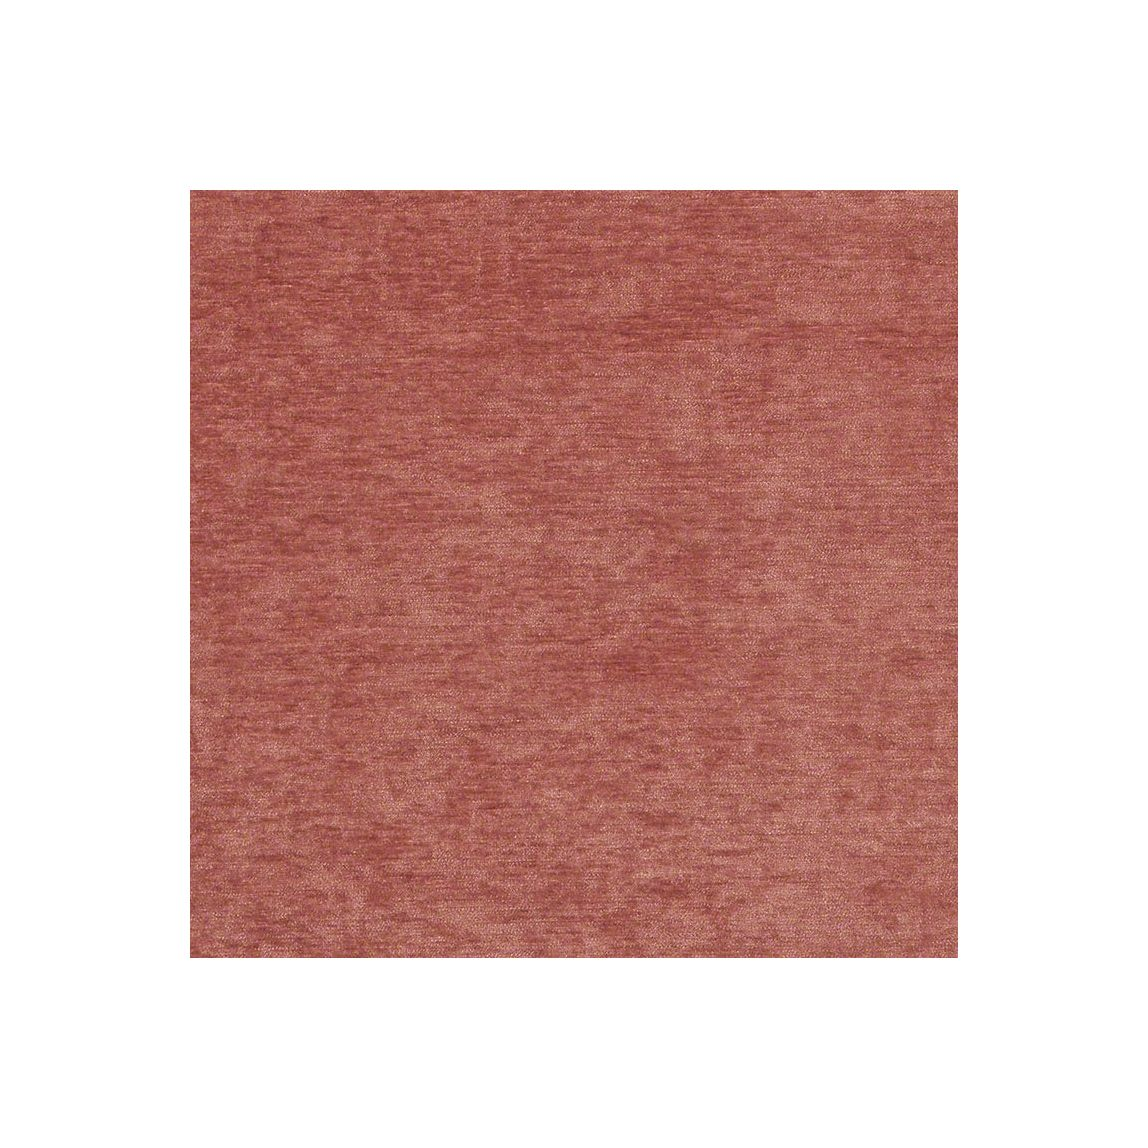 Ritz Begonia Swatch